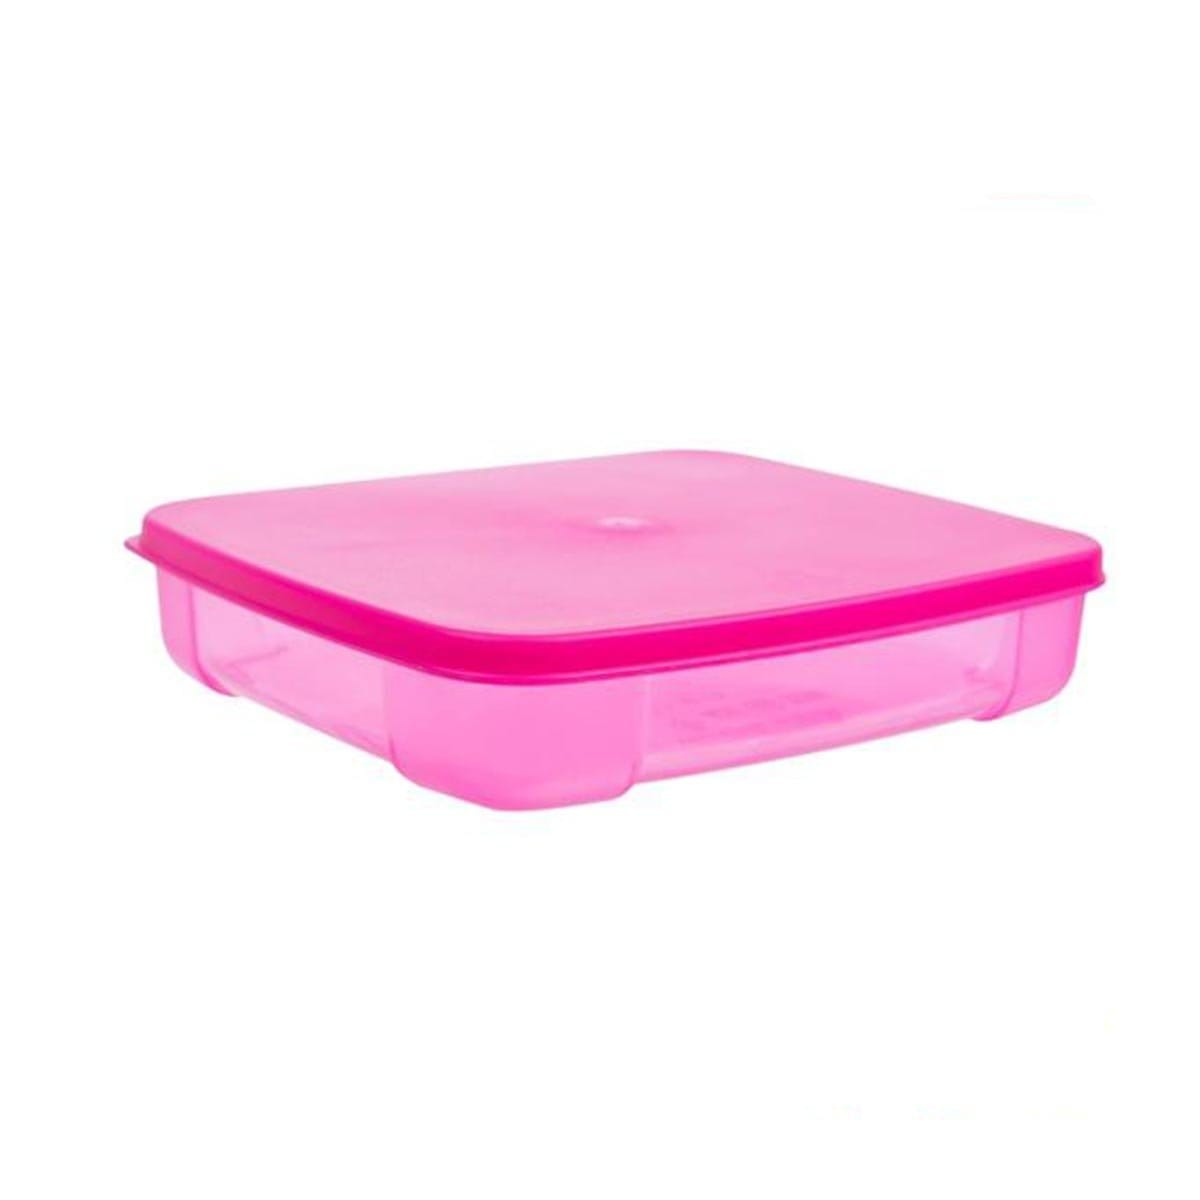 0106 Food Container 1.2L